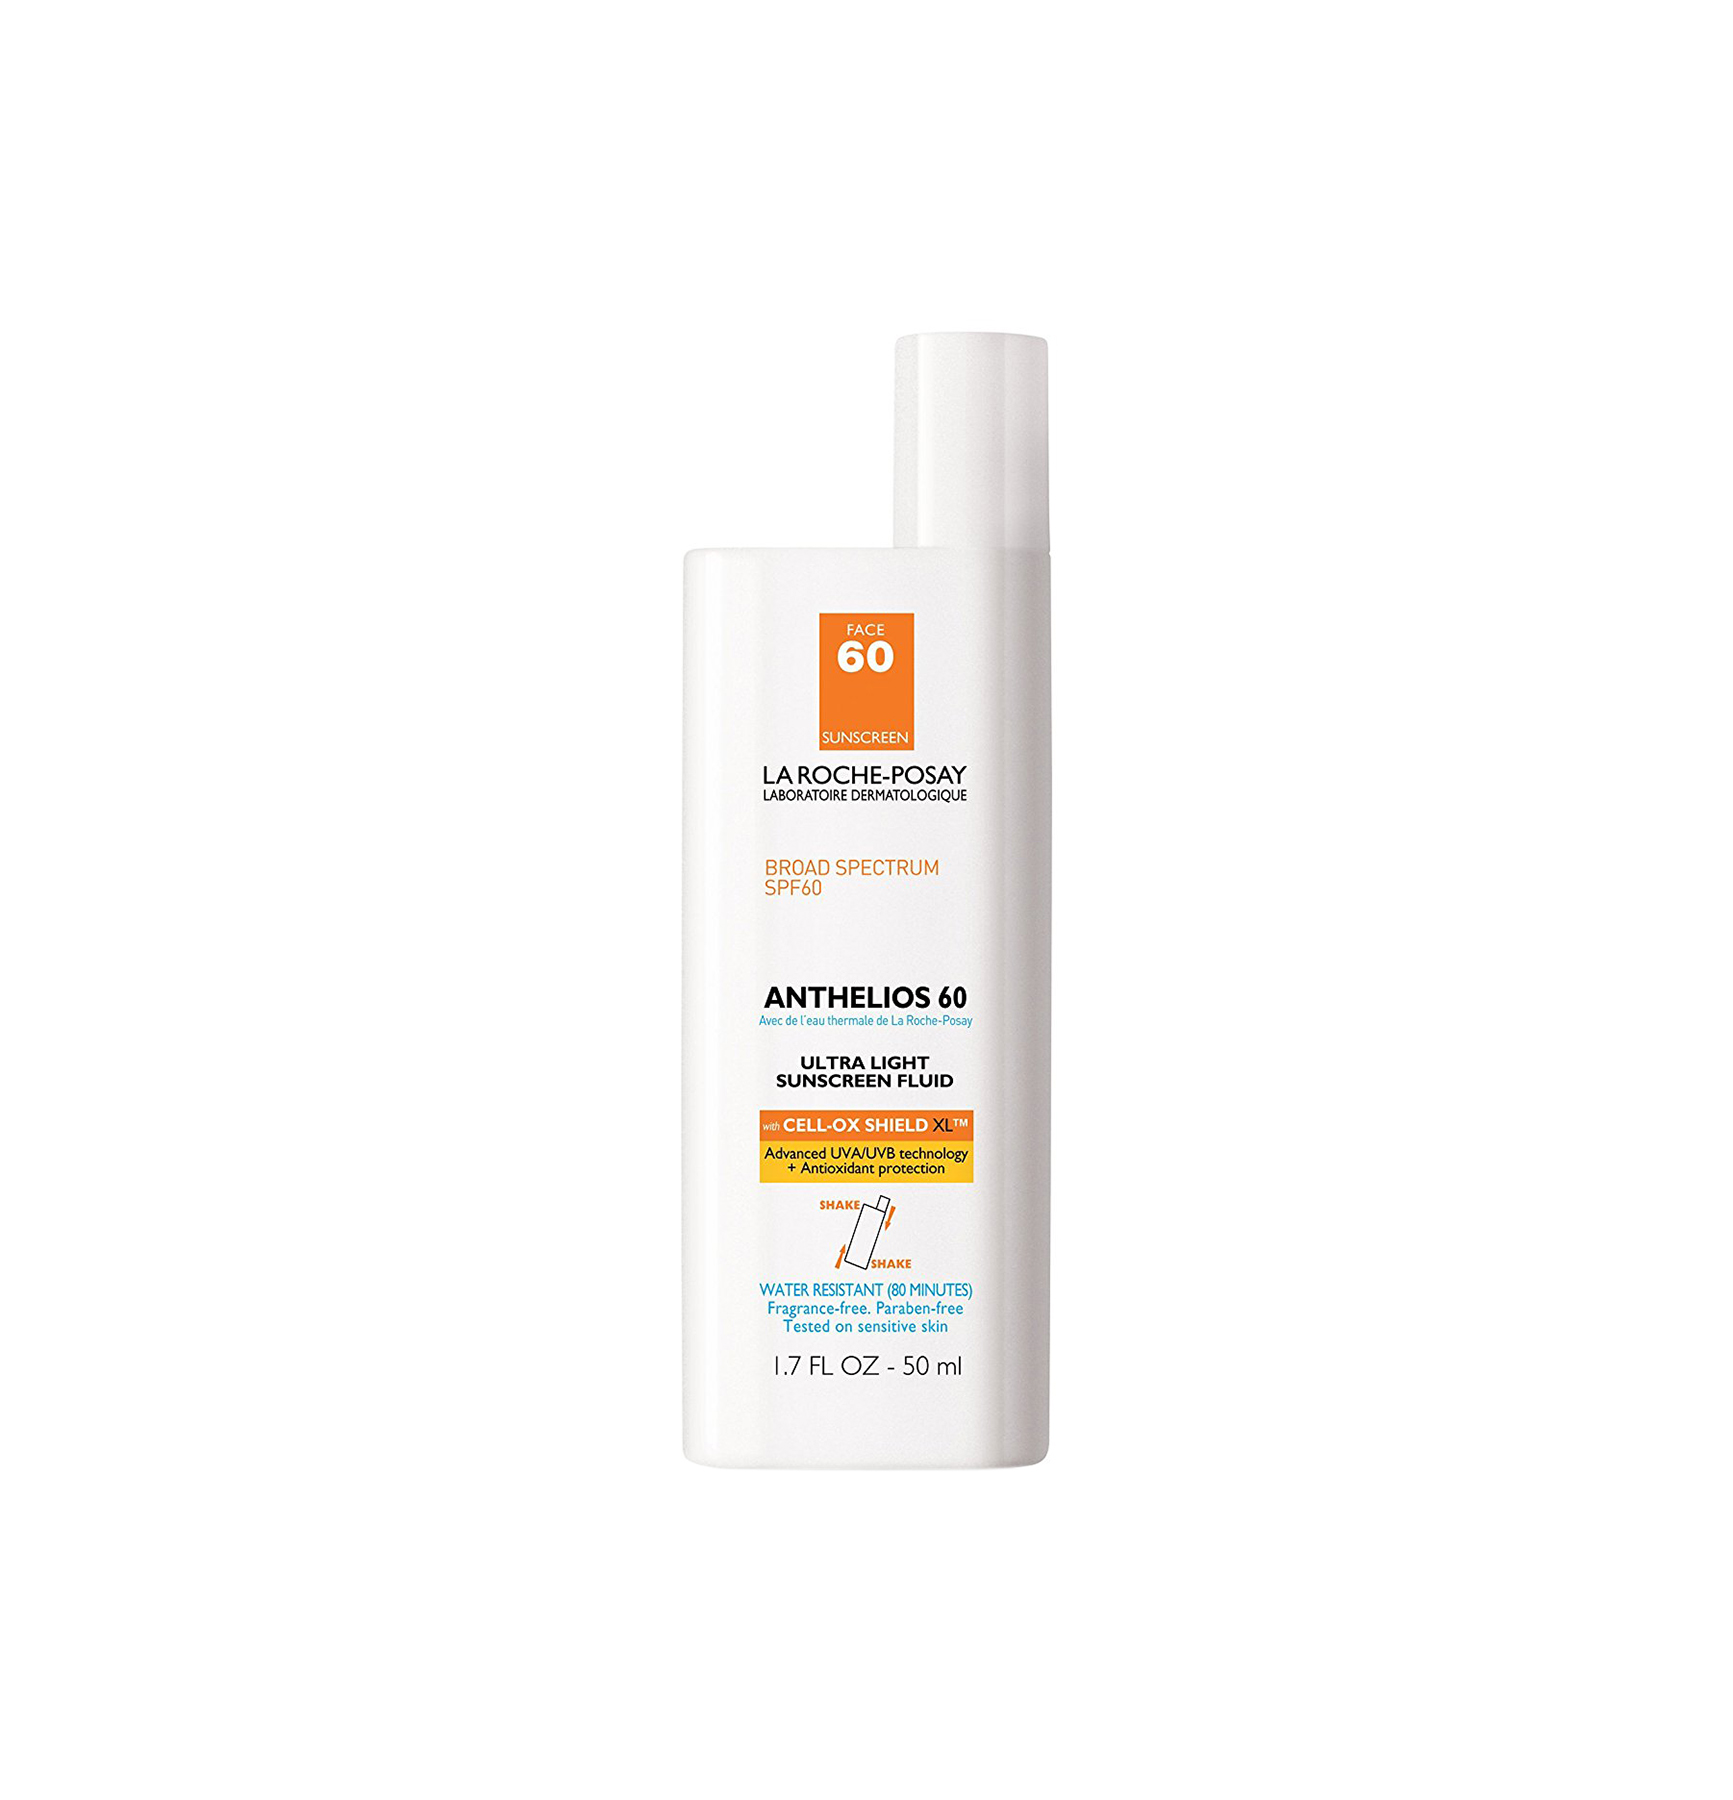 La Roche-Posay Anthelios 60 Ultra-Light Sunscreen Fluid